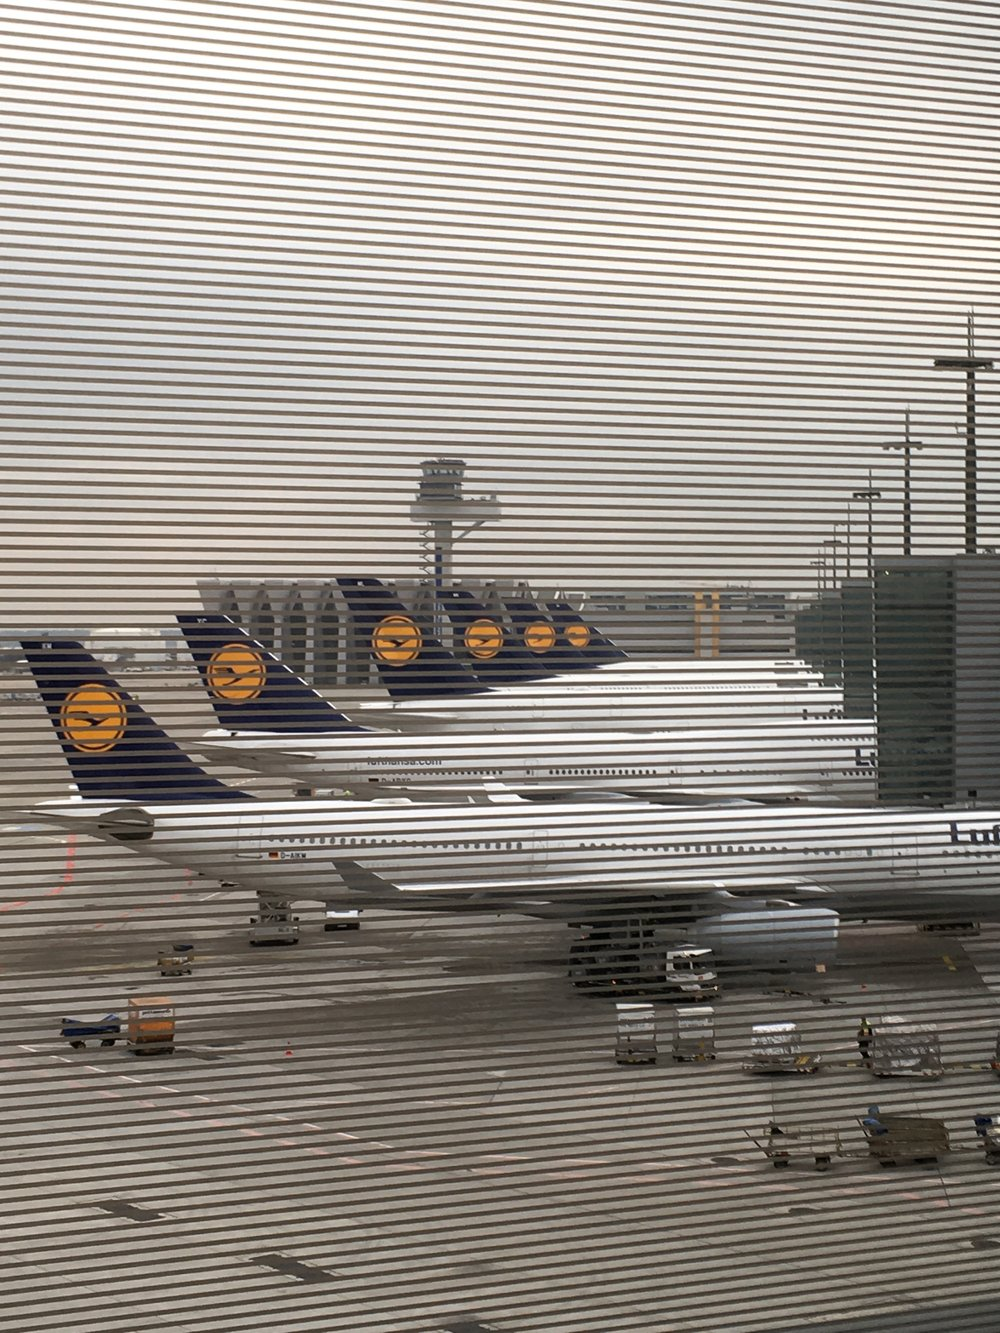 Aircrafts at Frankfurt on Sunday right after the big LH pilot strike - heaven for plane spotters